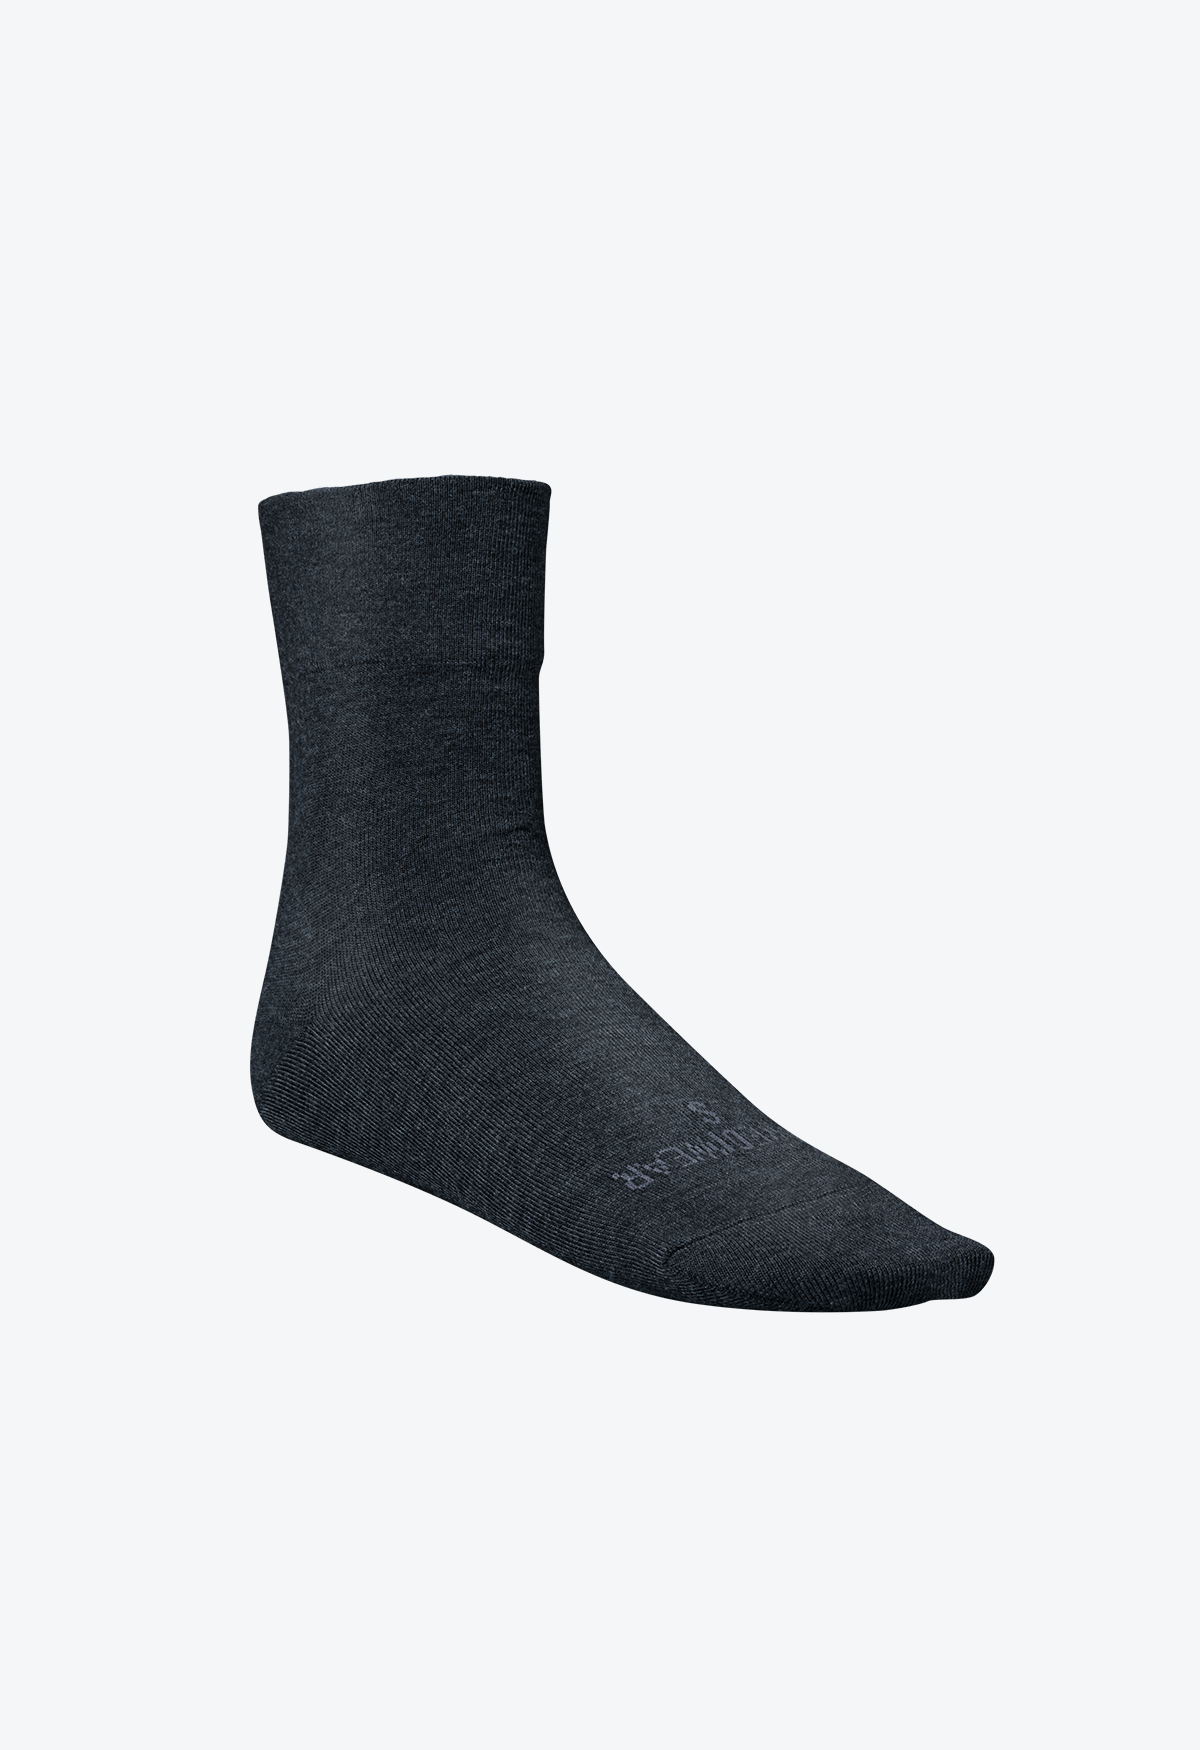 Incrediwear Dress Socks